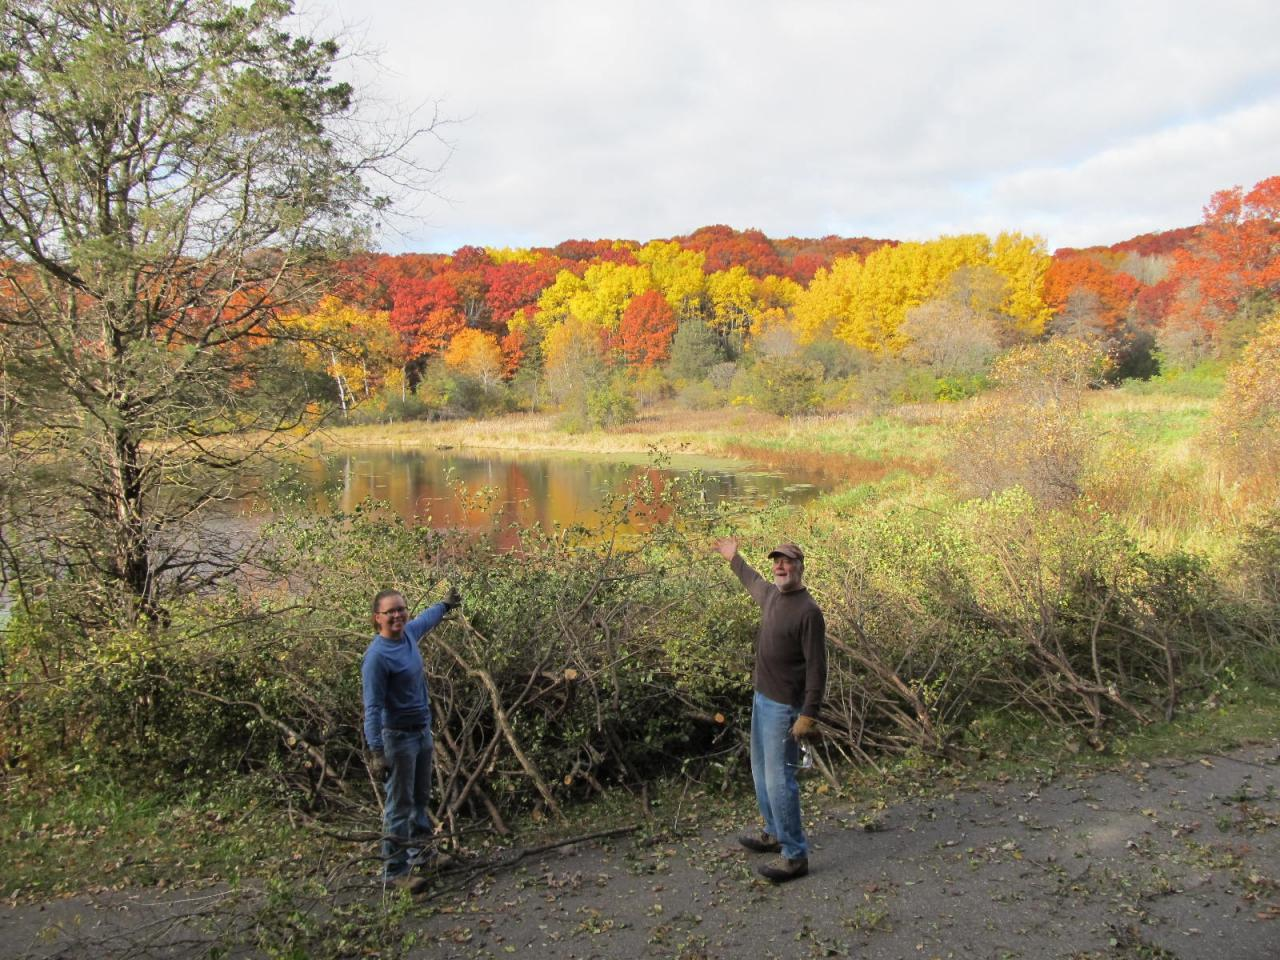 Not a bad view at all! Volunteers pose in front of their hauled brush pile along the edge of the lake.